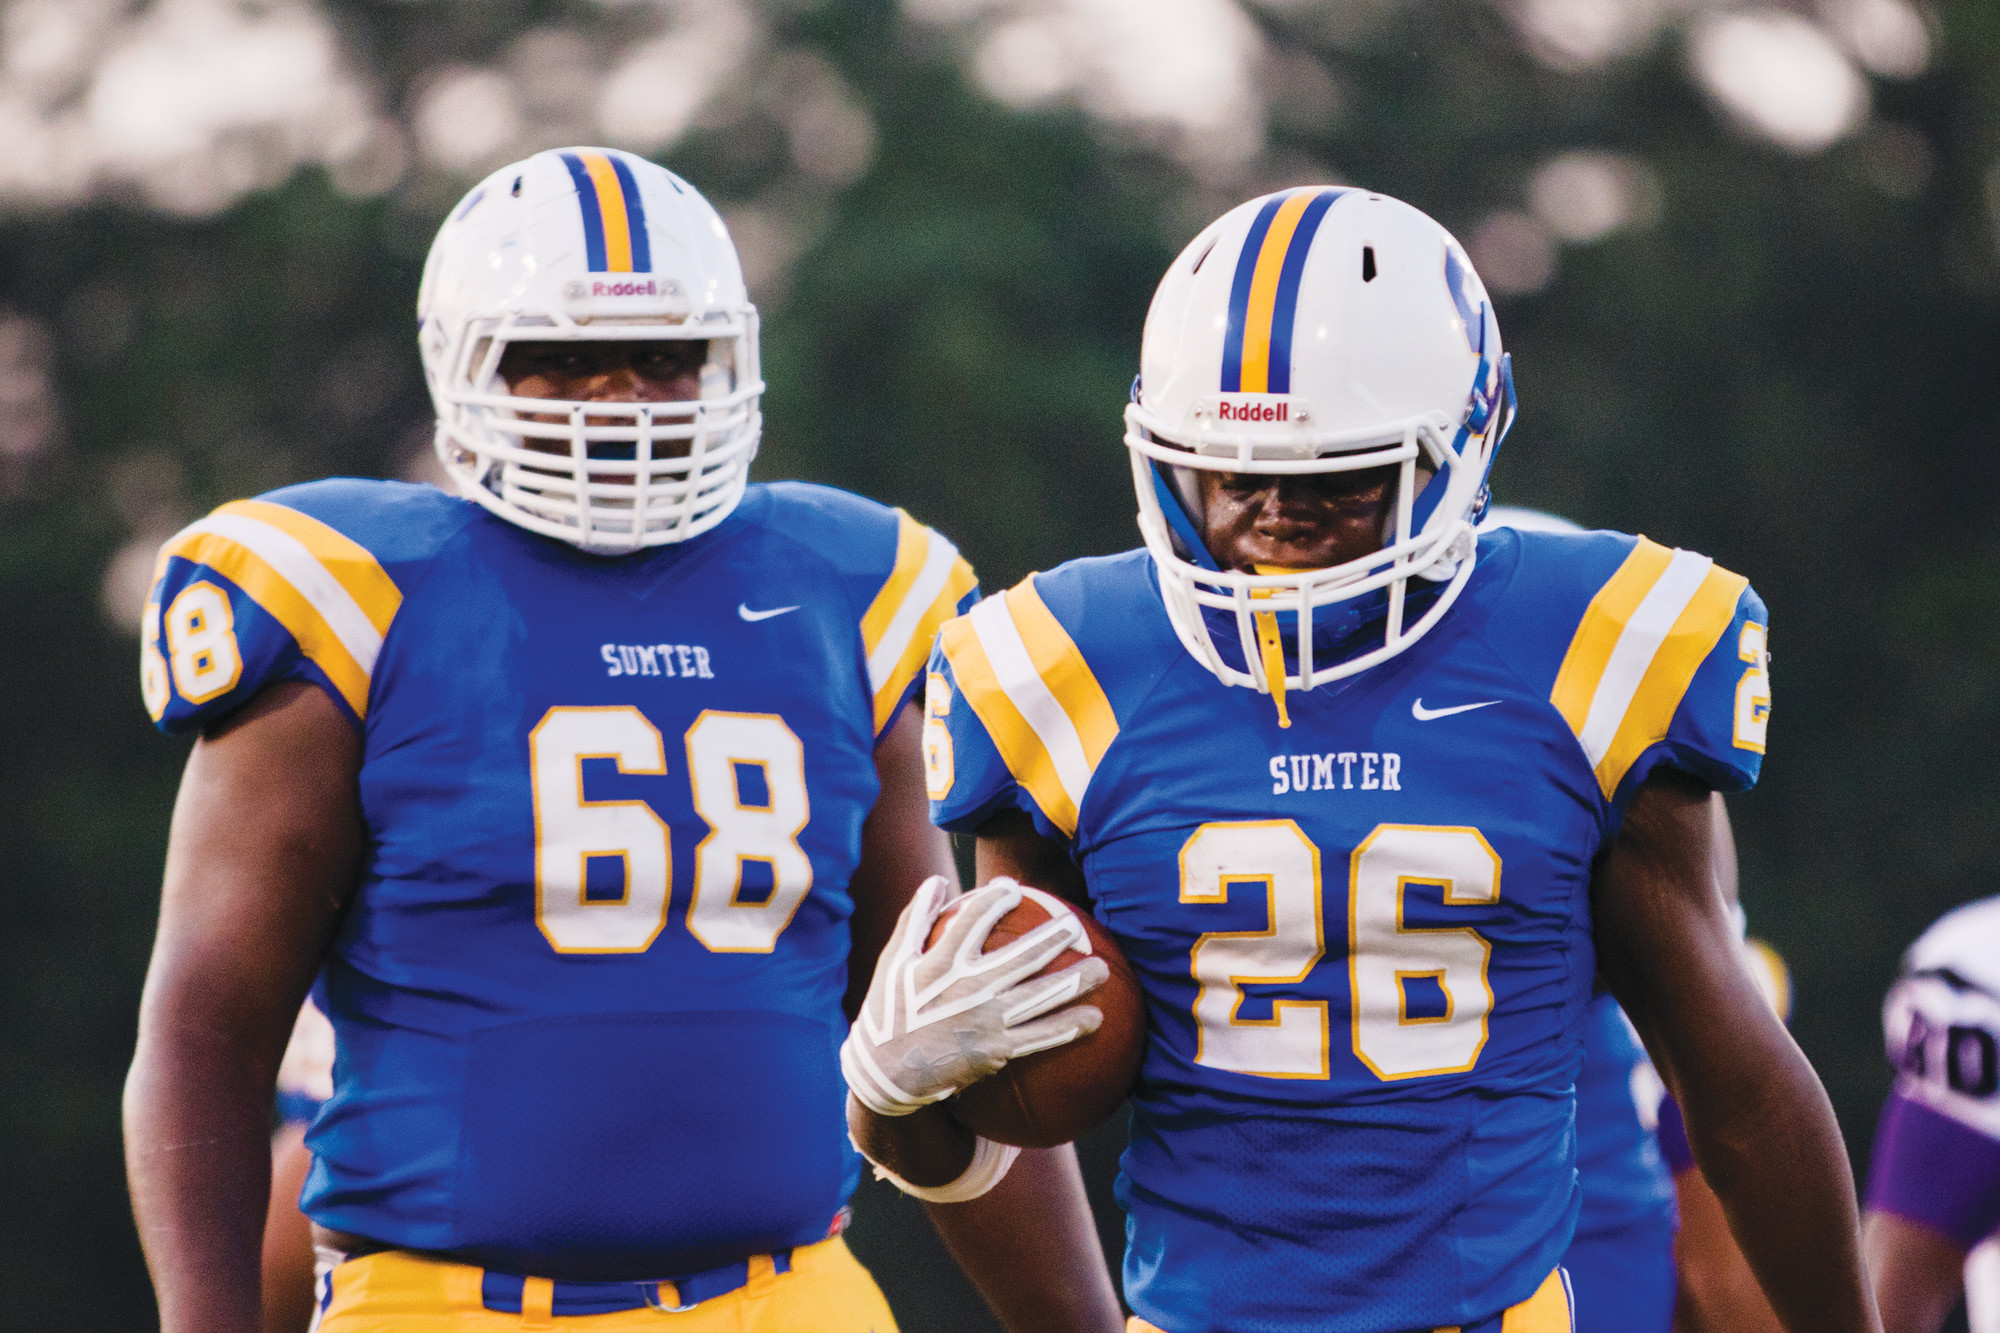 Sumter High School's Tayvian Gass (68) won The Sumter Item Offensive Lineman Player of the Week for the second straight week despite moving from right tackle to center due to an injury on the offensive line.